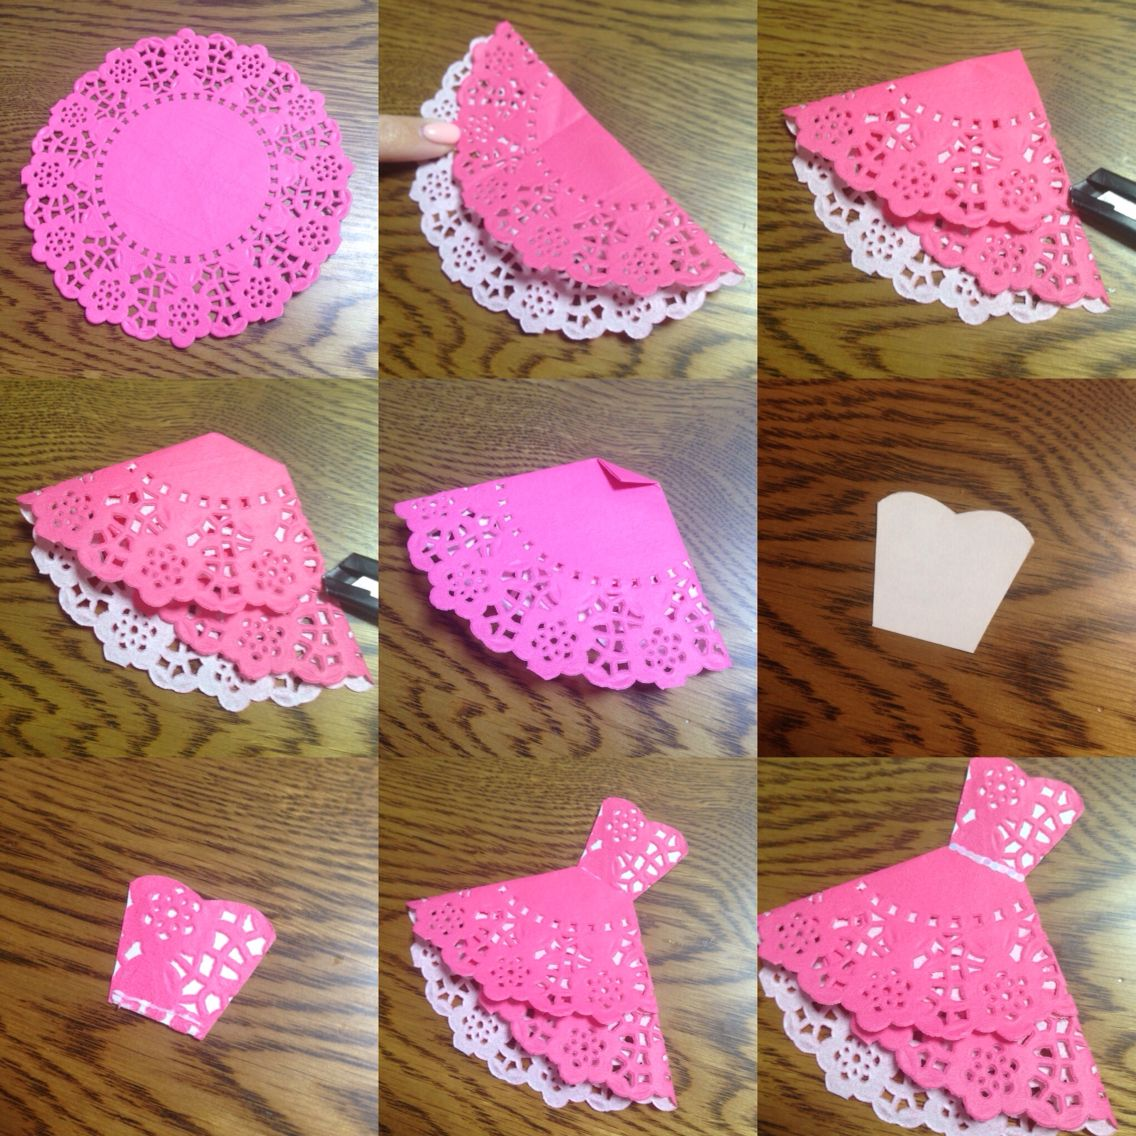 How to fold and make doily dress | >>Handmade Cards